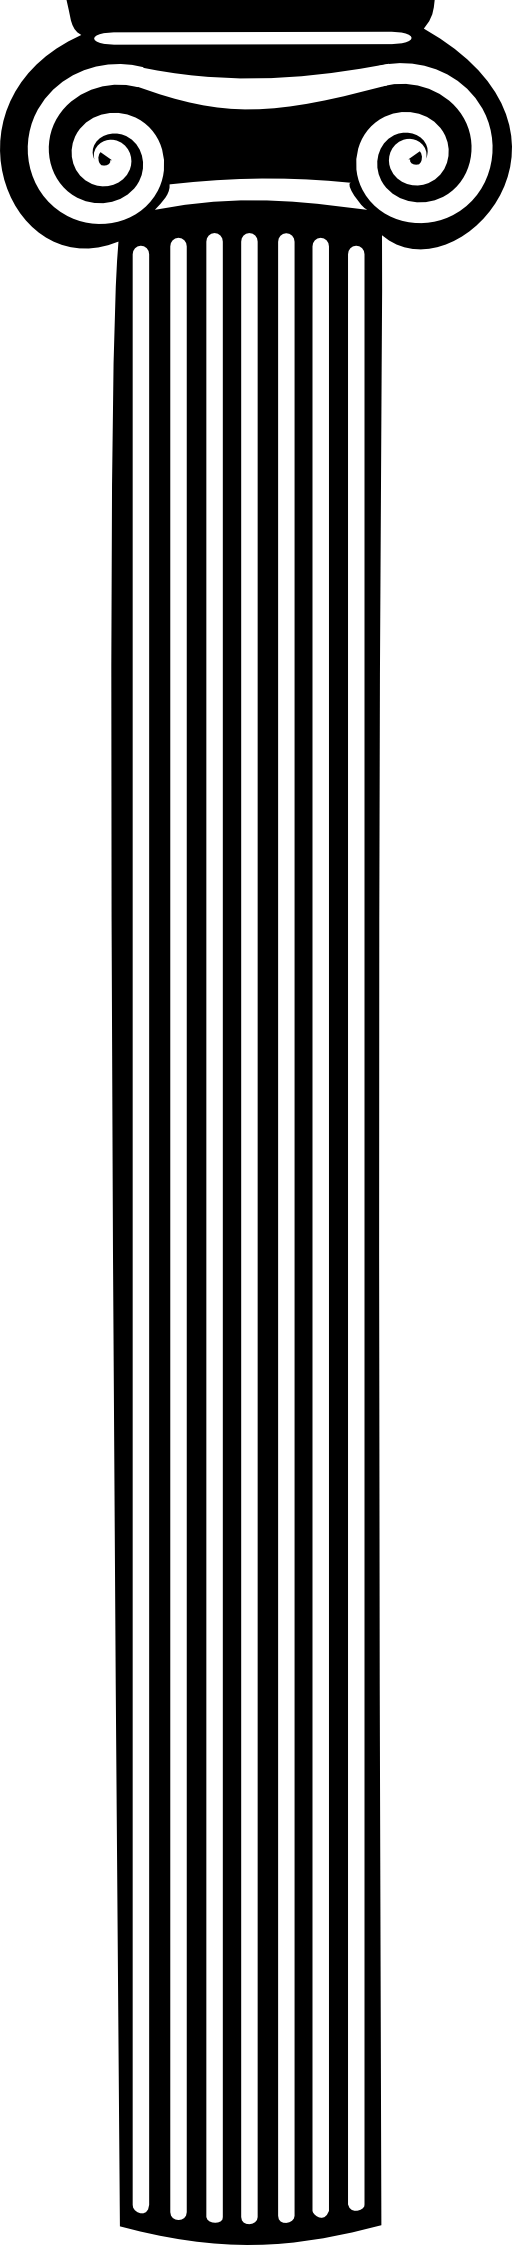 Pillar drawing simple. Collection of png